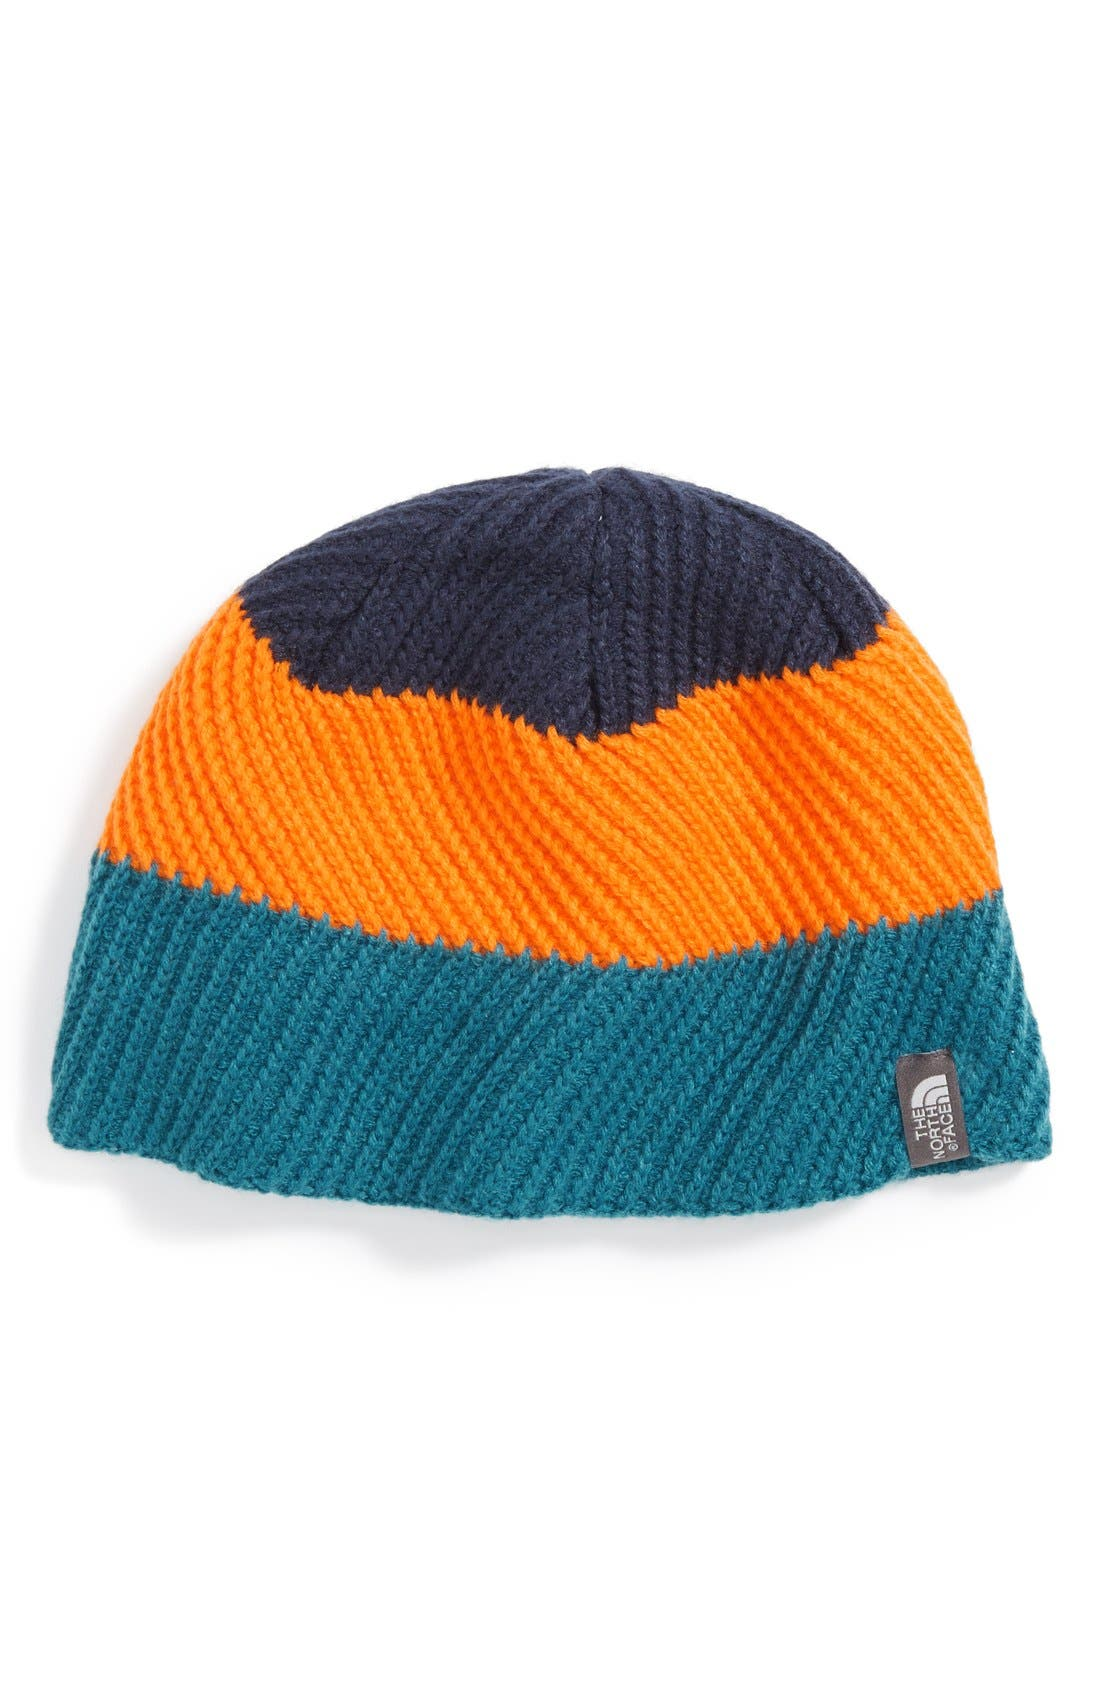 Main Image - The North Face 'Youth Gone Wild' Beanie (Big Boys)